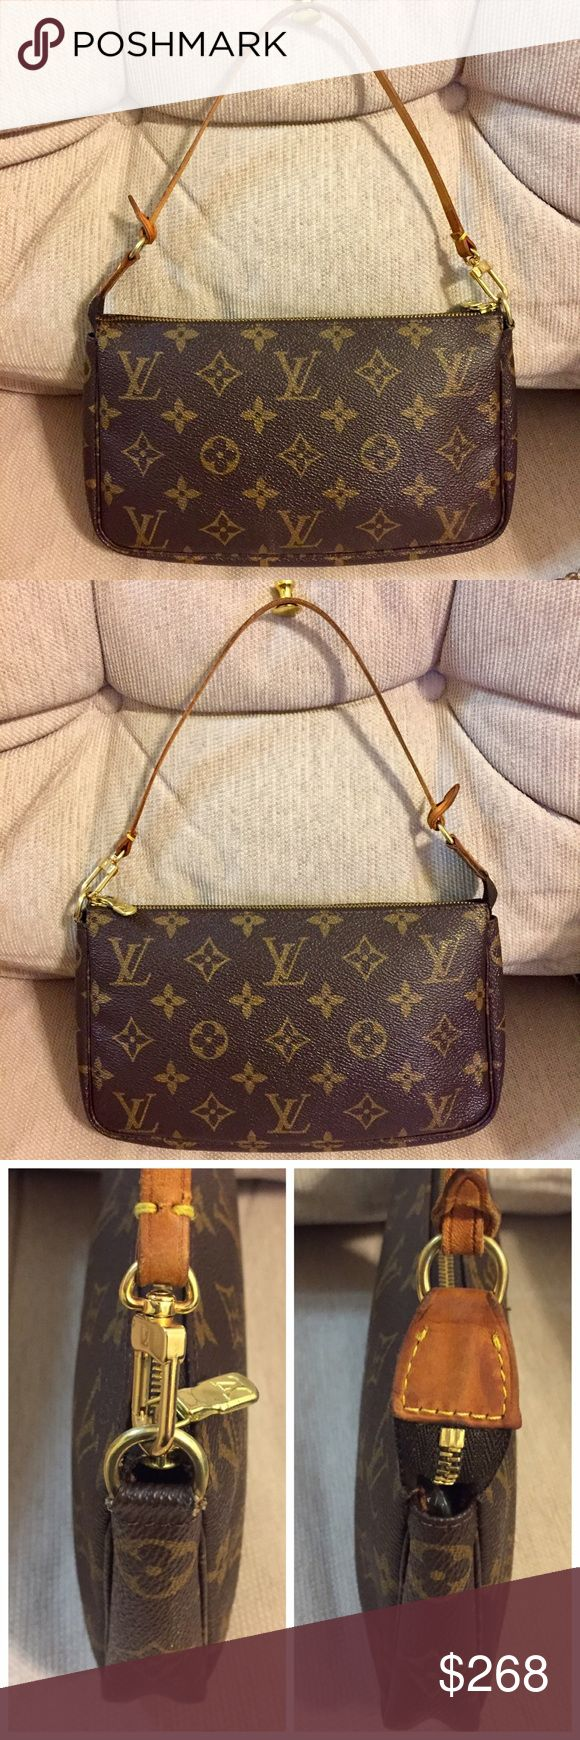 "Louis Vuitton Pochette Accessoires 100% Authentic Made in France Date Code:AR 0060 Size: W8.25xH5xD1""  Monogram leather is in good condition. No stains/ tears. Vachetta tab has developed to a rich patina, shows darkening, wear, scratches. Strap has creases, uneven color and cracks but strong usable. With NEW crossbody chain strap (unbranded). Hardwares have minimal tarnish. Zipper works properly. Lining is clean. Minor storage smell. No LV dust bag. Free non LV dust bag. ❌ TRADE. Louis…"